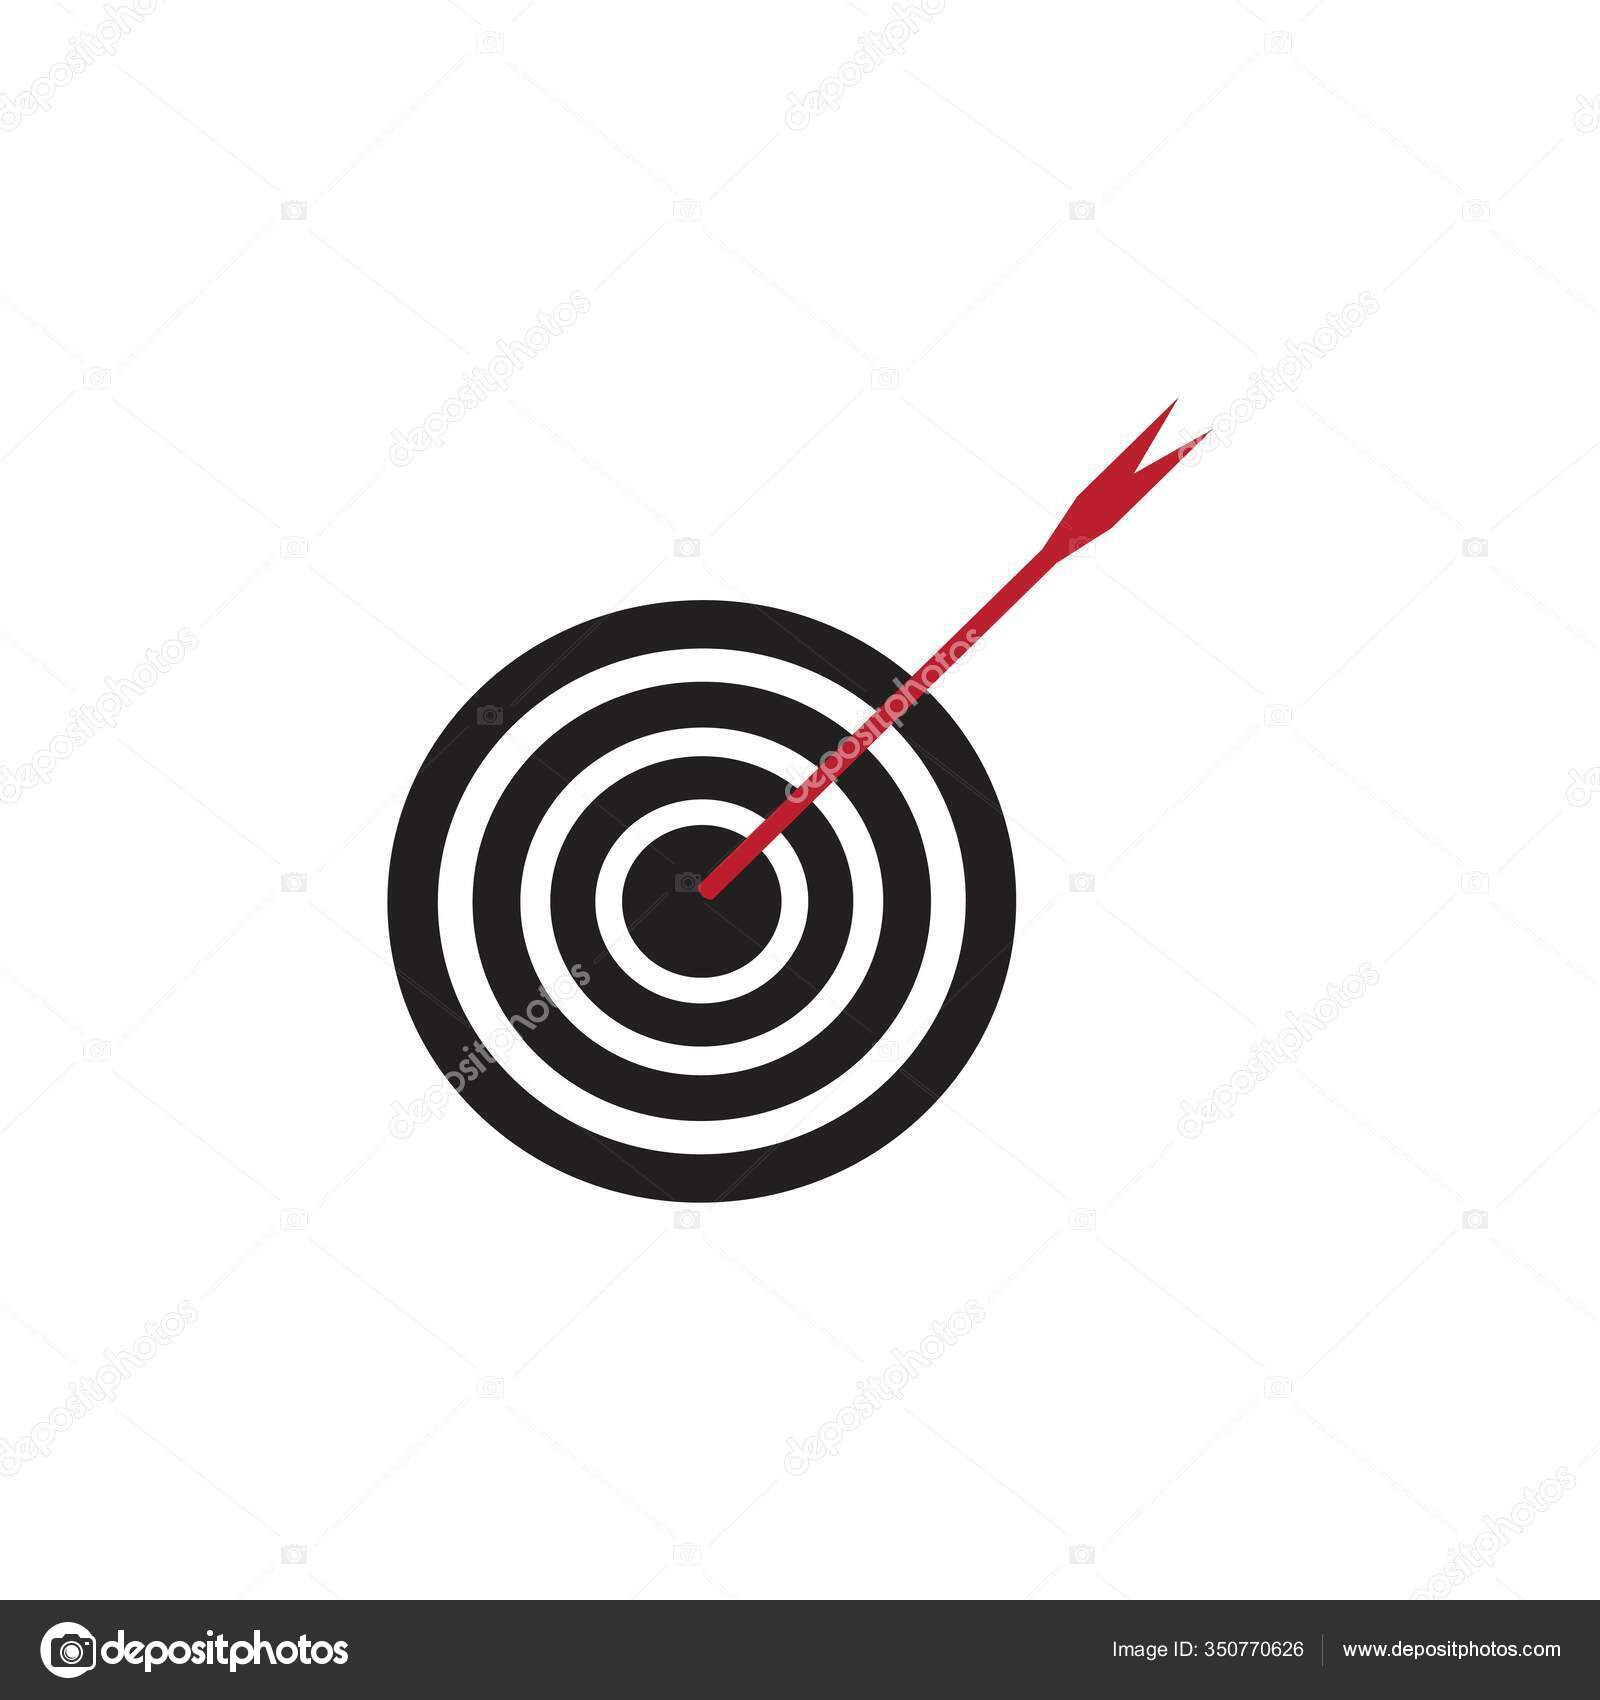 Target Icon Vector Ilustration Template Stock Vector C Ahmadwahyu27 Gmail Com 350770626 Affordable and search from millions of royalty free images, photos and vectors. depositphotos